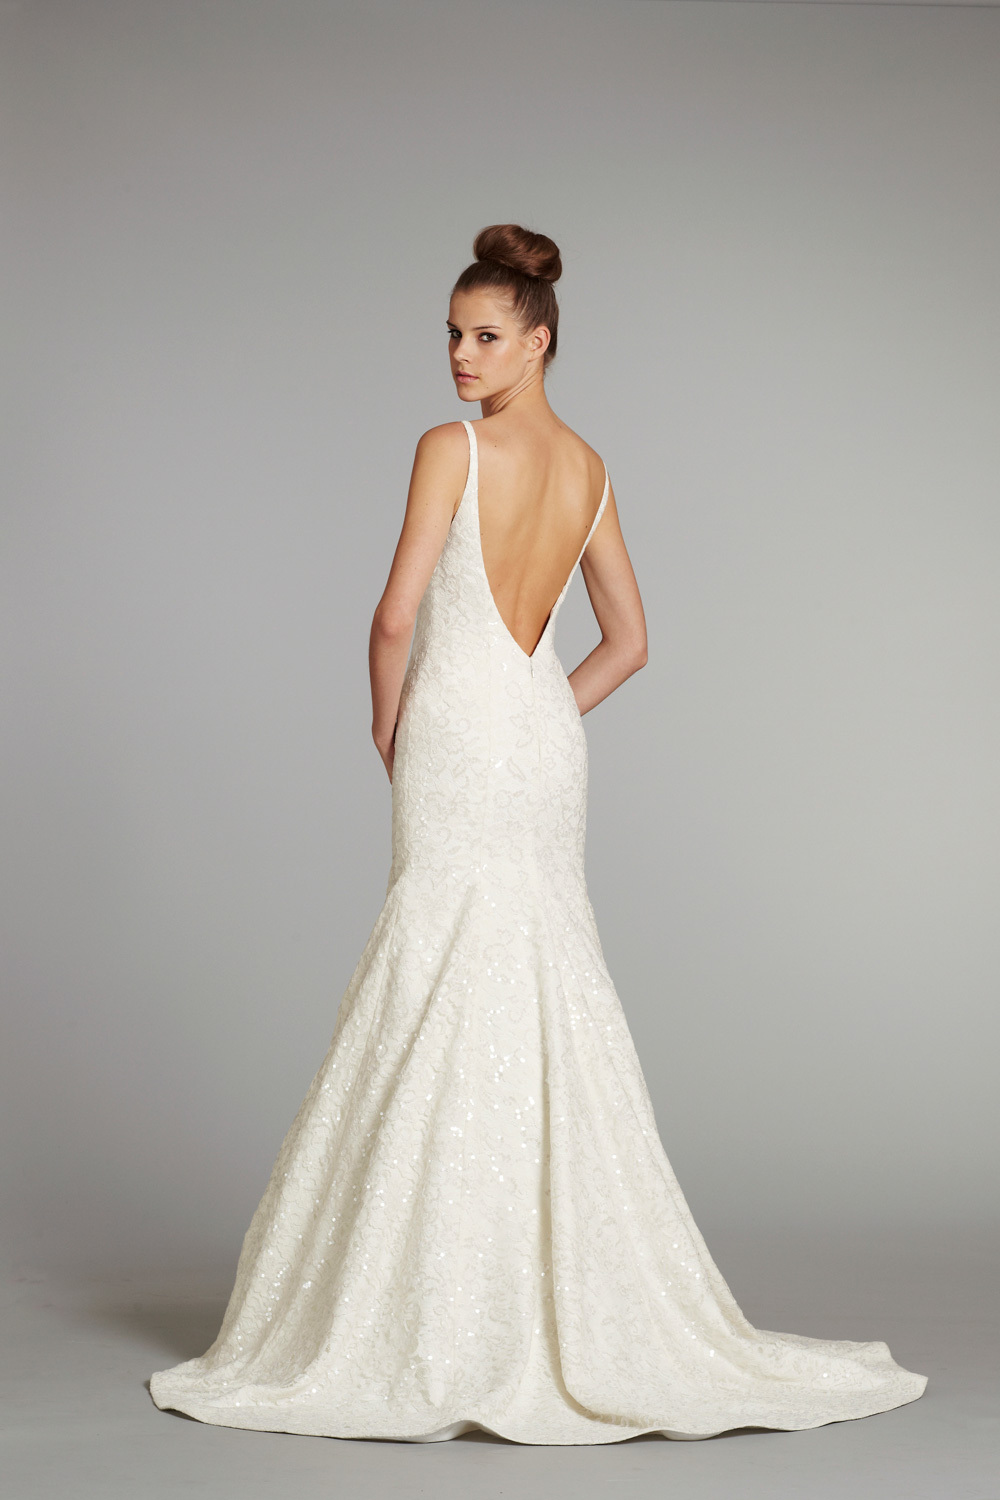 New-bridal-gowns-fall-2012-wedding-dress-hayley-paige-for-jlm-couture-vanna-b.full